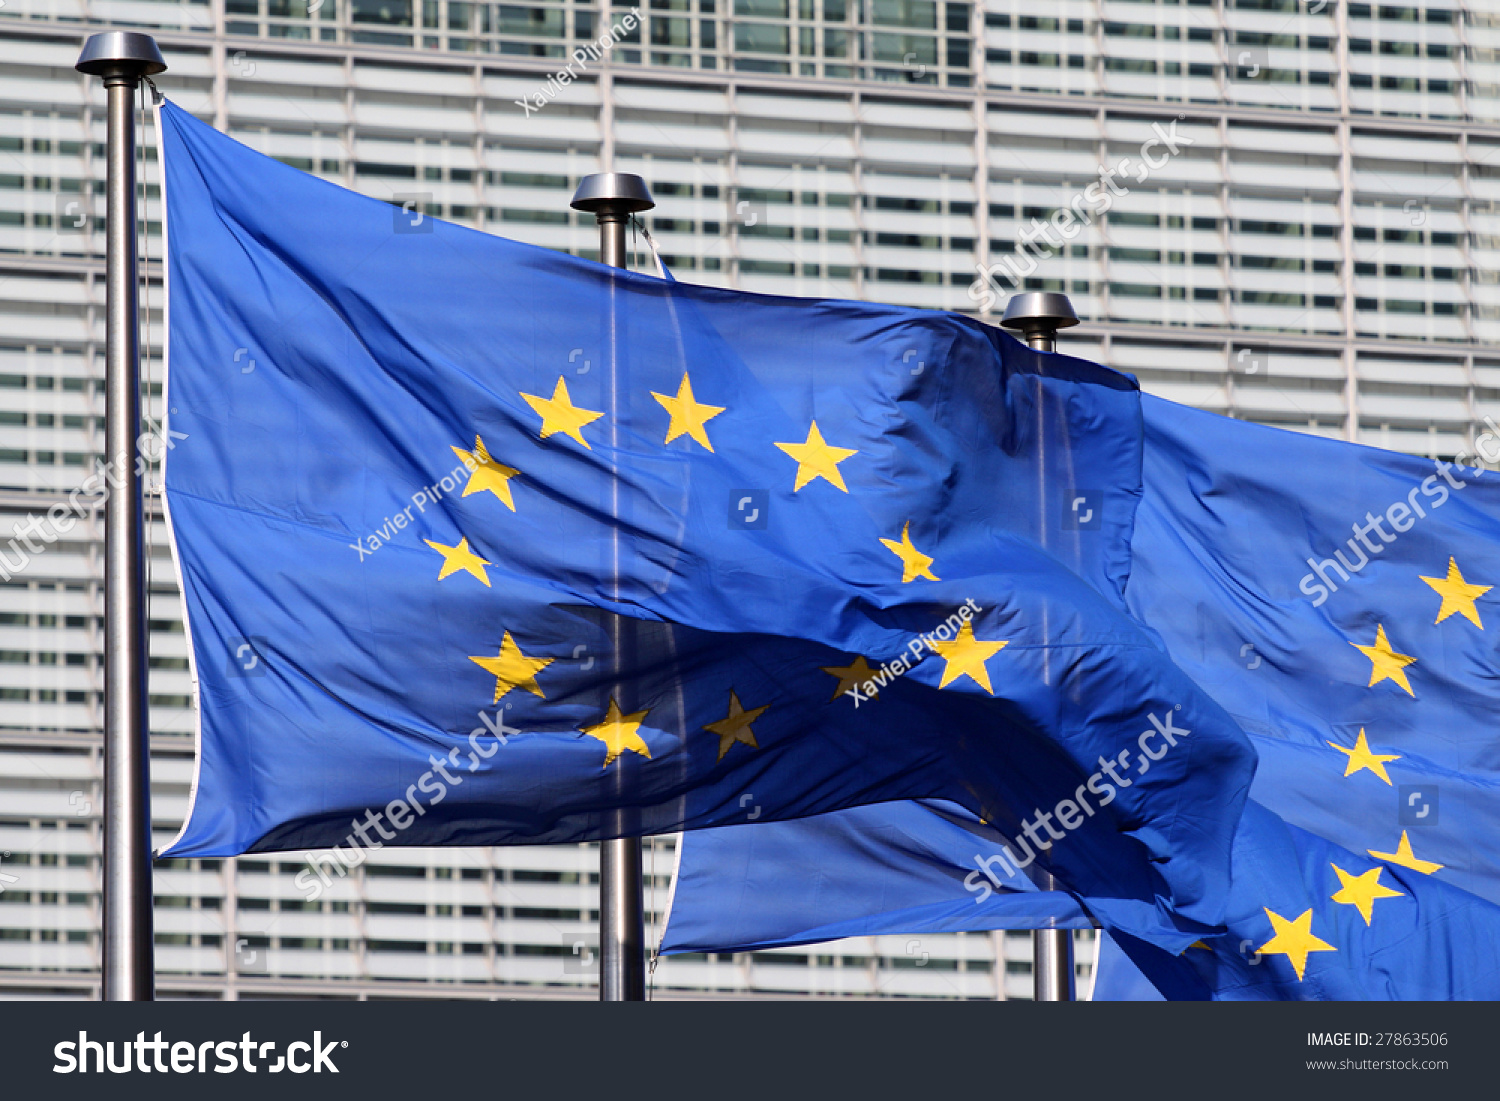 Wind Blowing On Building : European flags floating in front of the